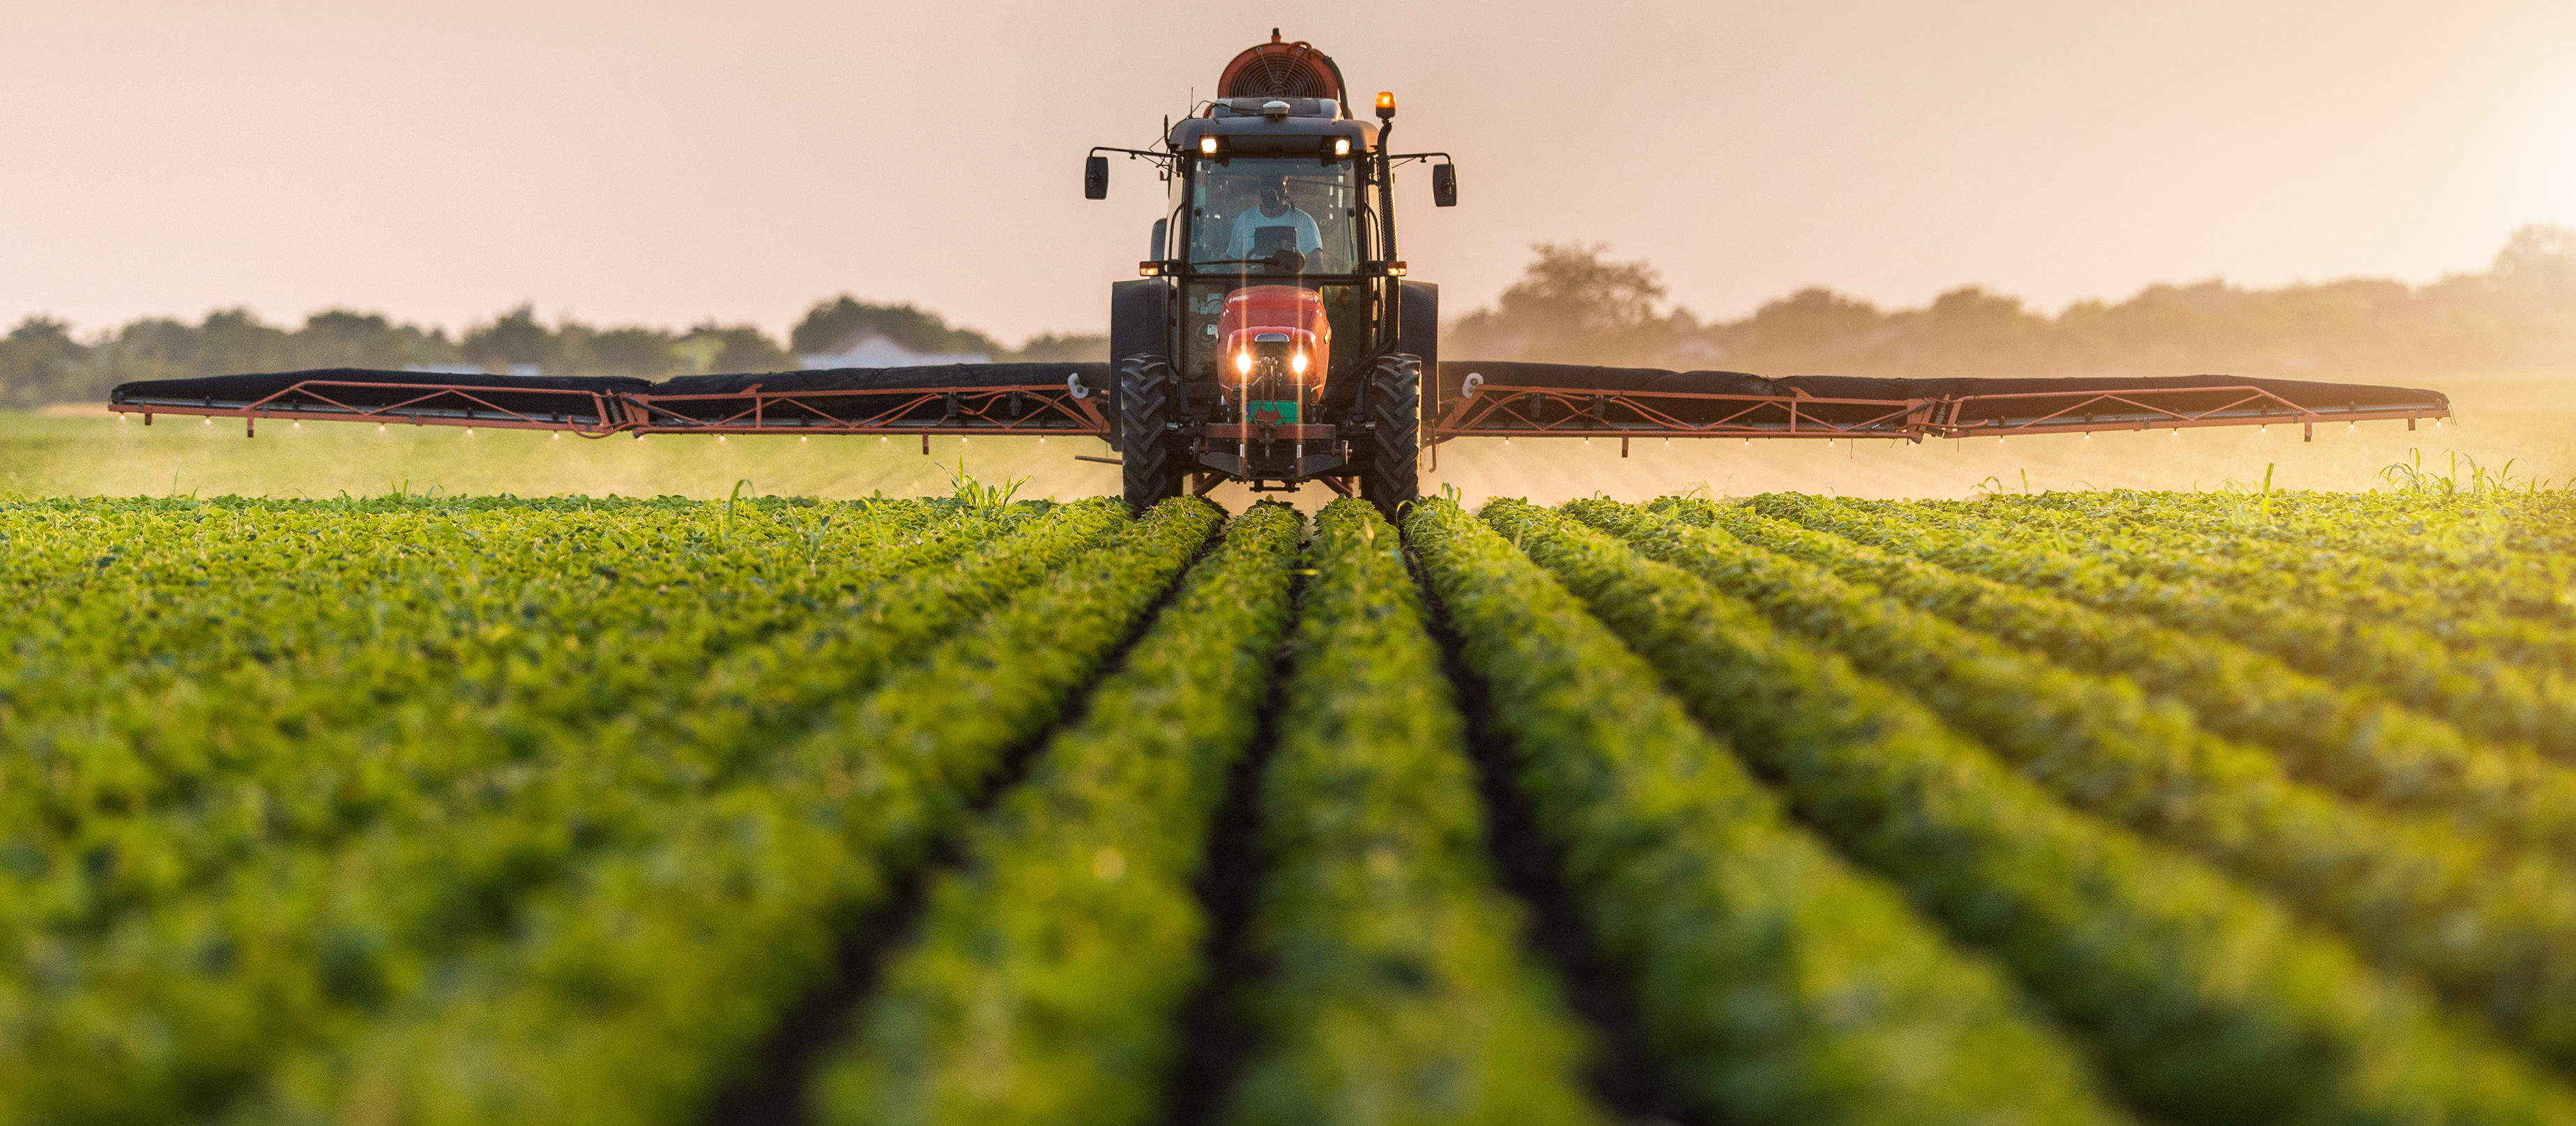 Spraying pesticides on soybean crop/ Shutterstock